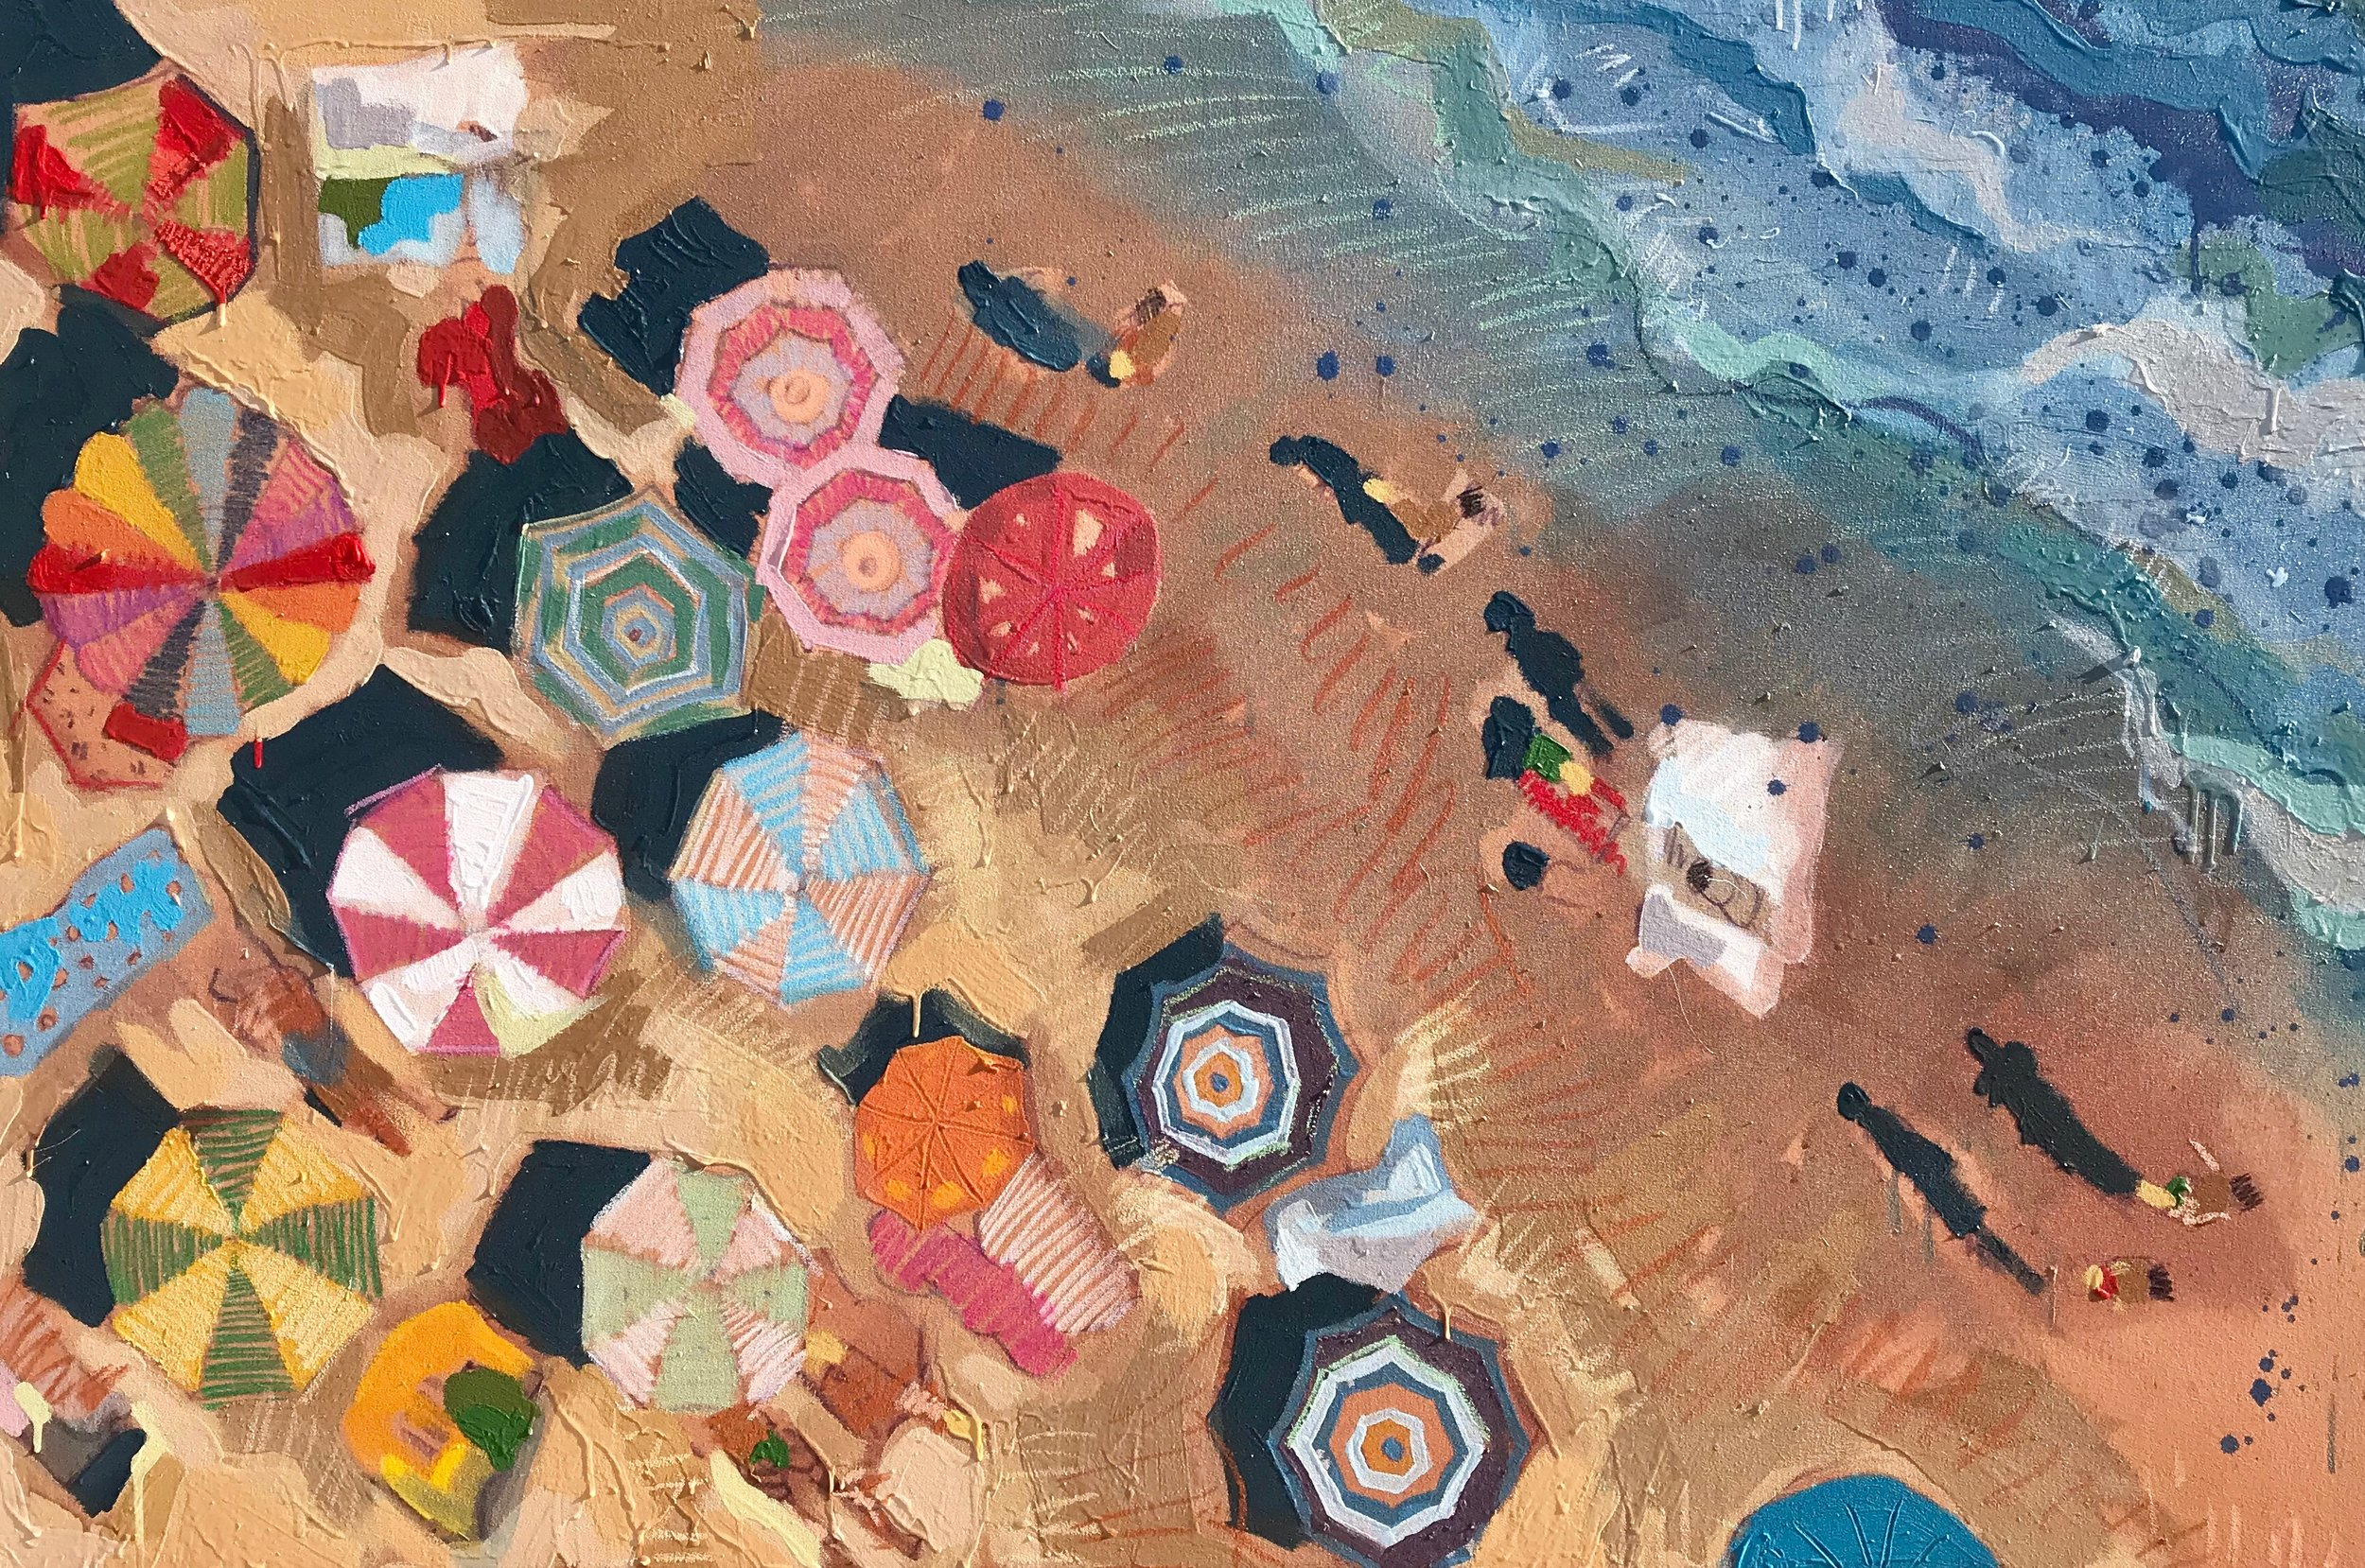 TIM JAEGER, LABOR DAY ON LIDO BEACH no. 6, 2019